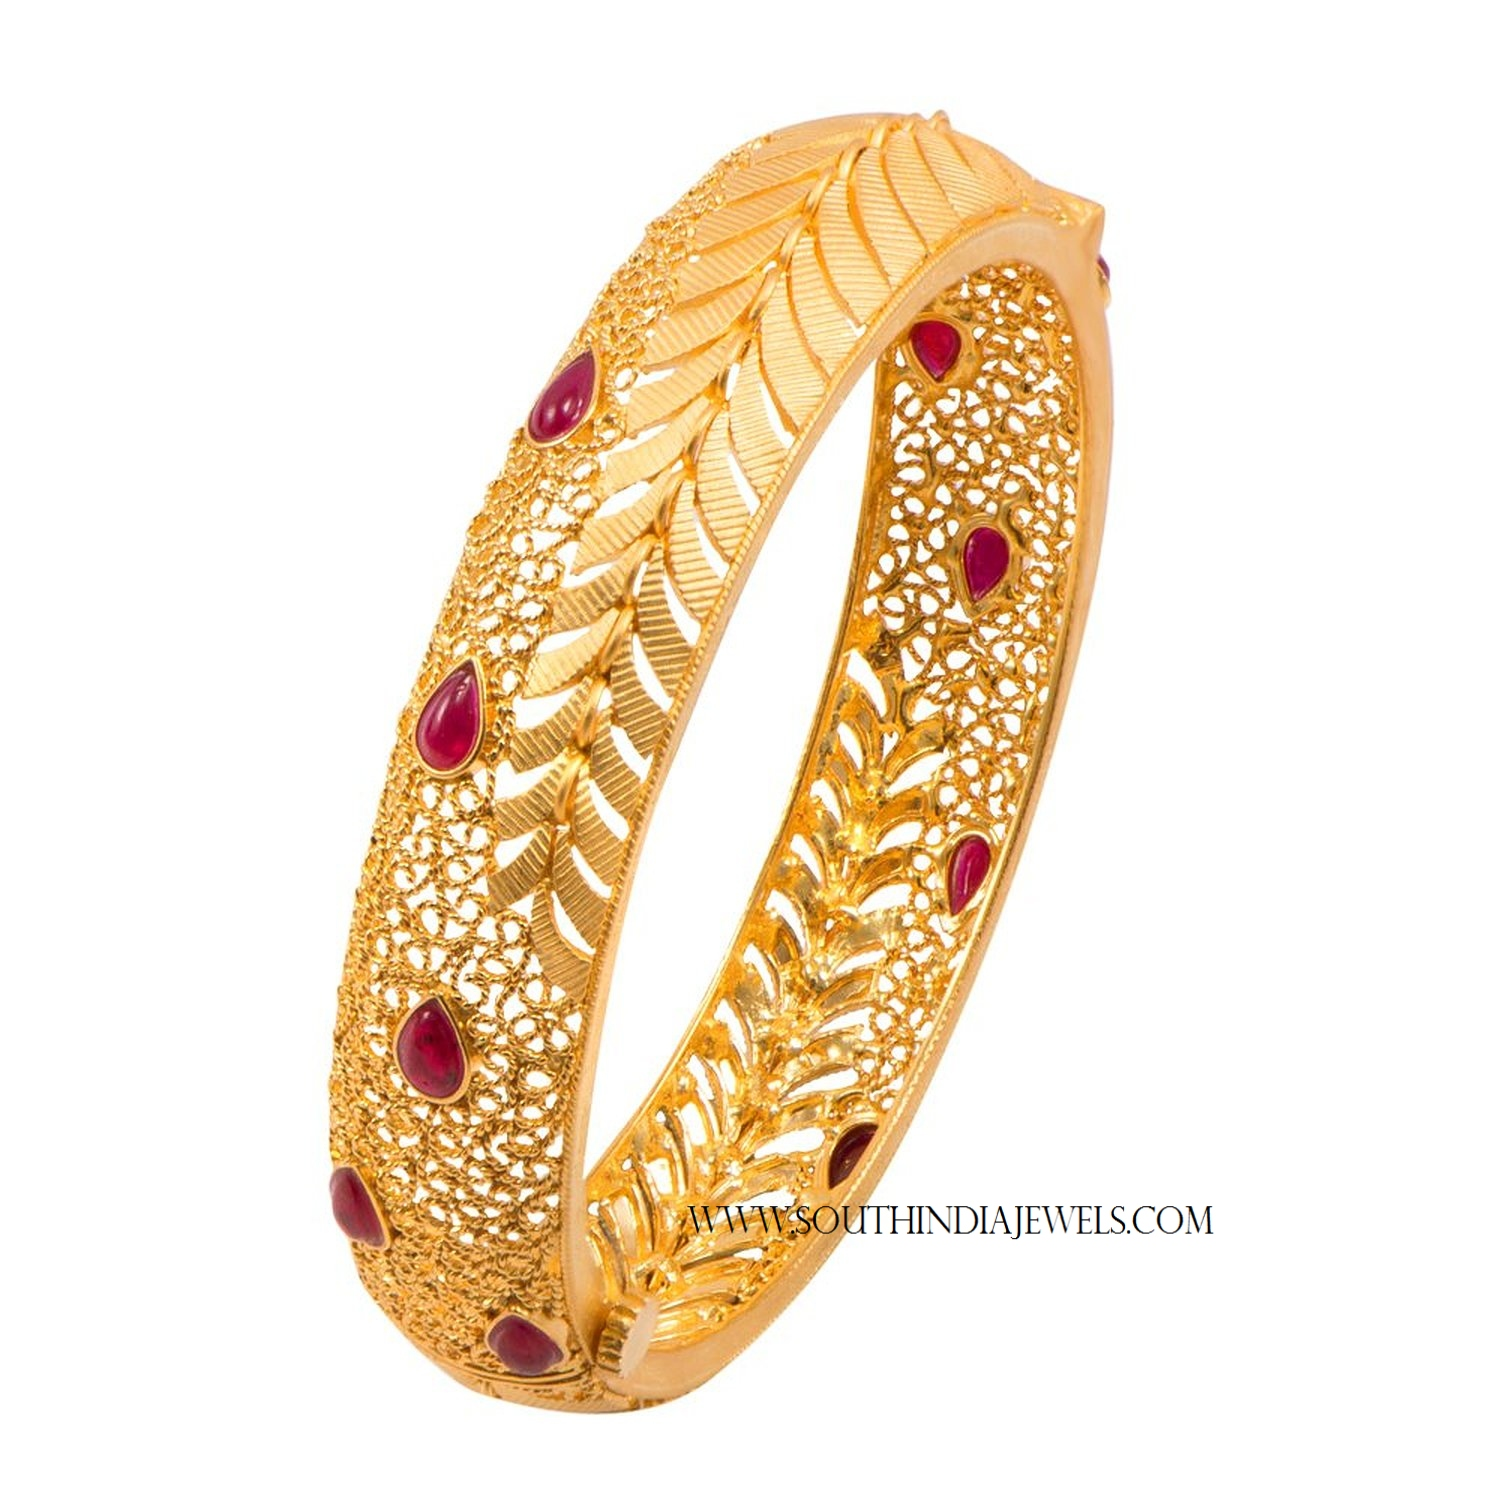 kalyan best jewellery company gold most bangles candere jewellers a price latest com wear trusted designed designs daily brands